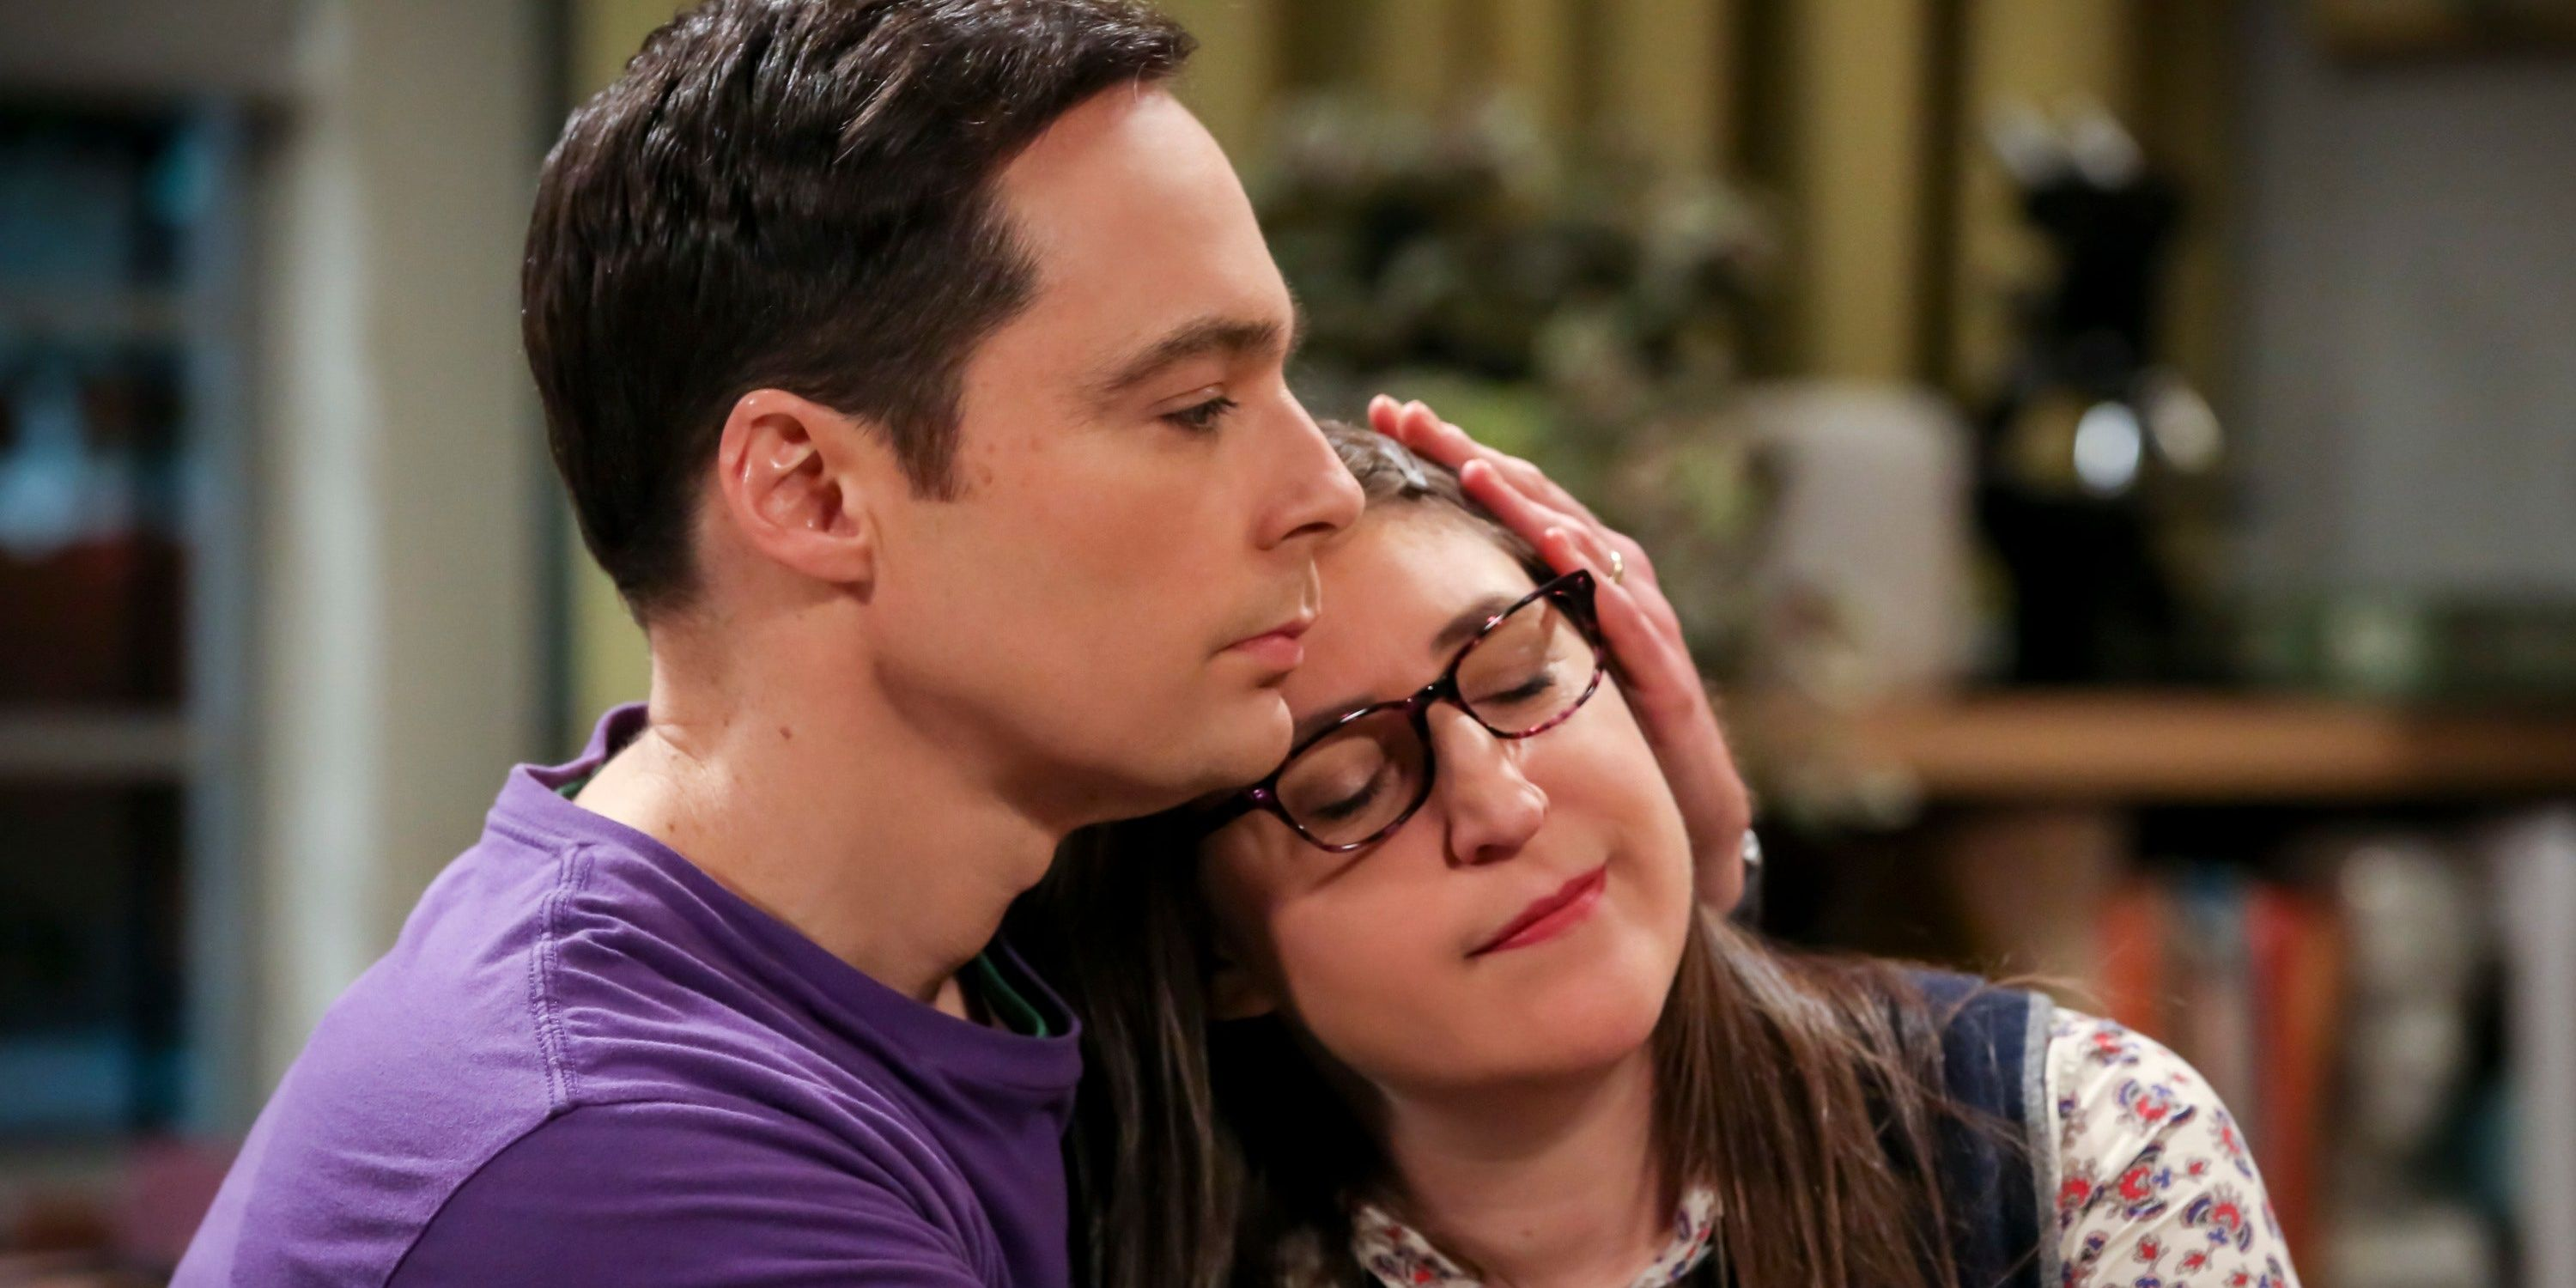 Big Bang Theory Star Explains Why Sheldon & Amy's Relationship Works